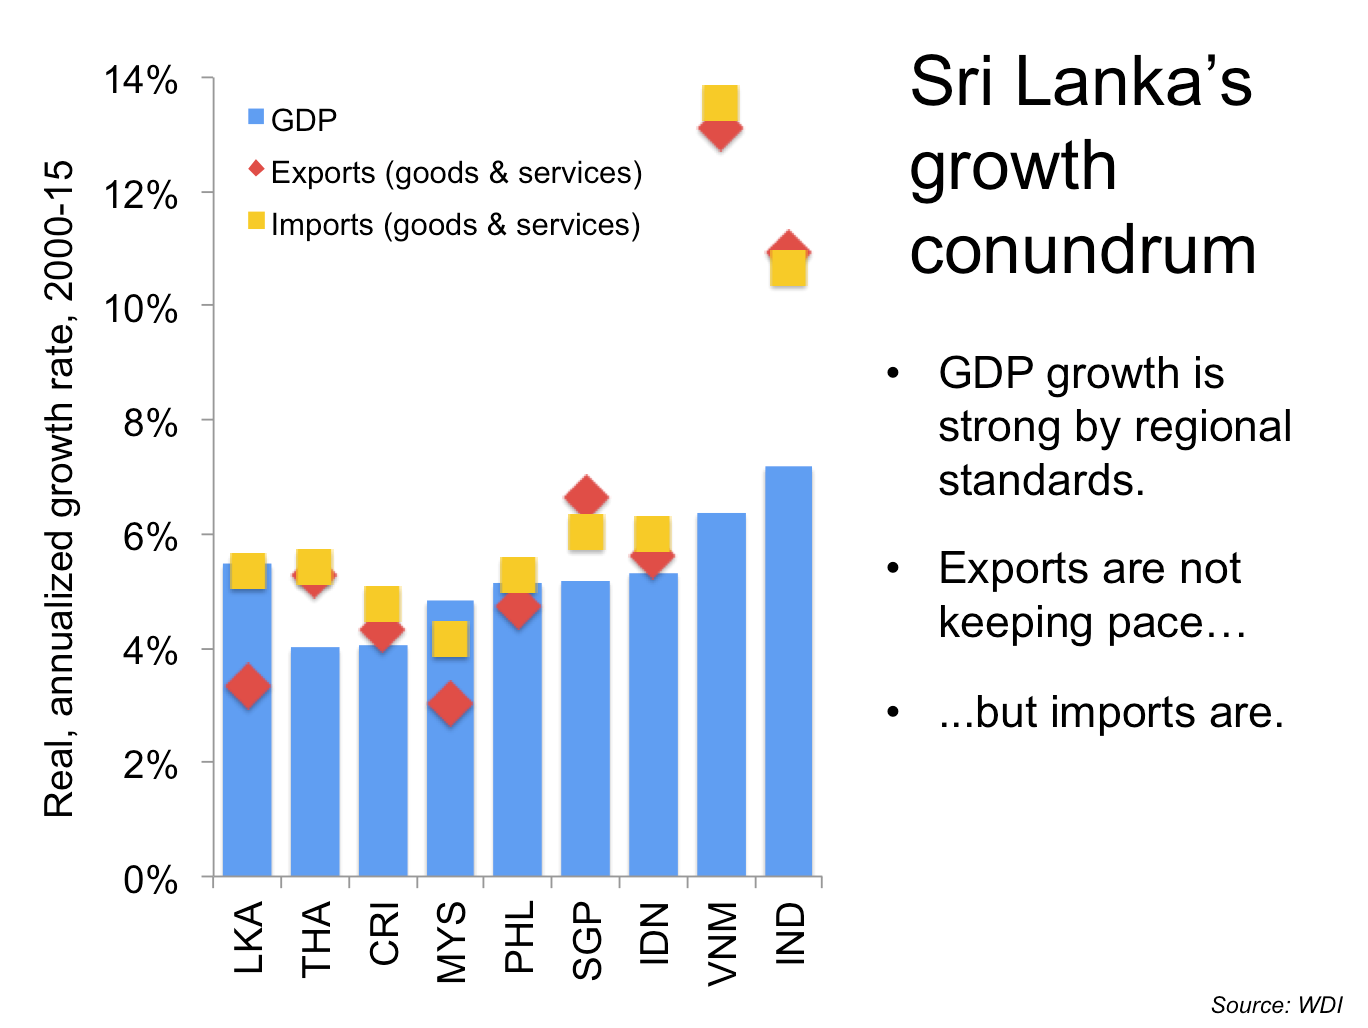 Sri Lanka Growth Conundrum